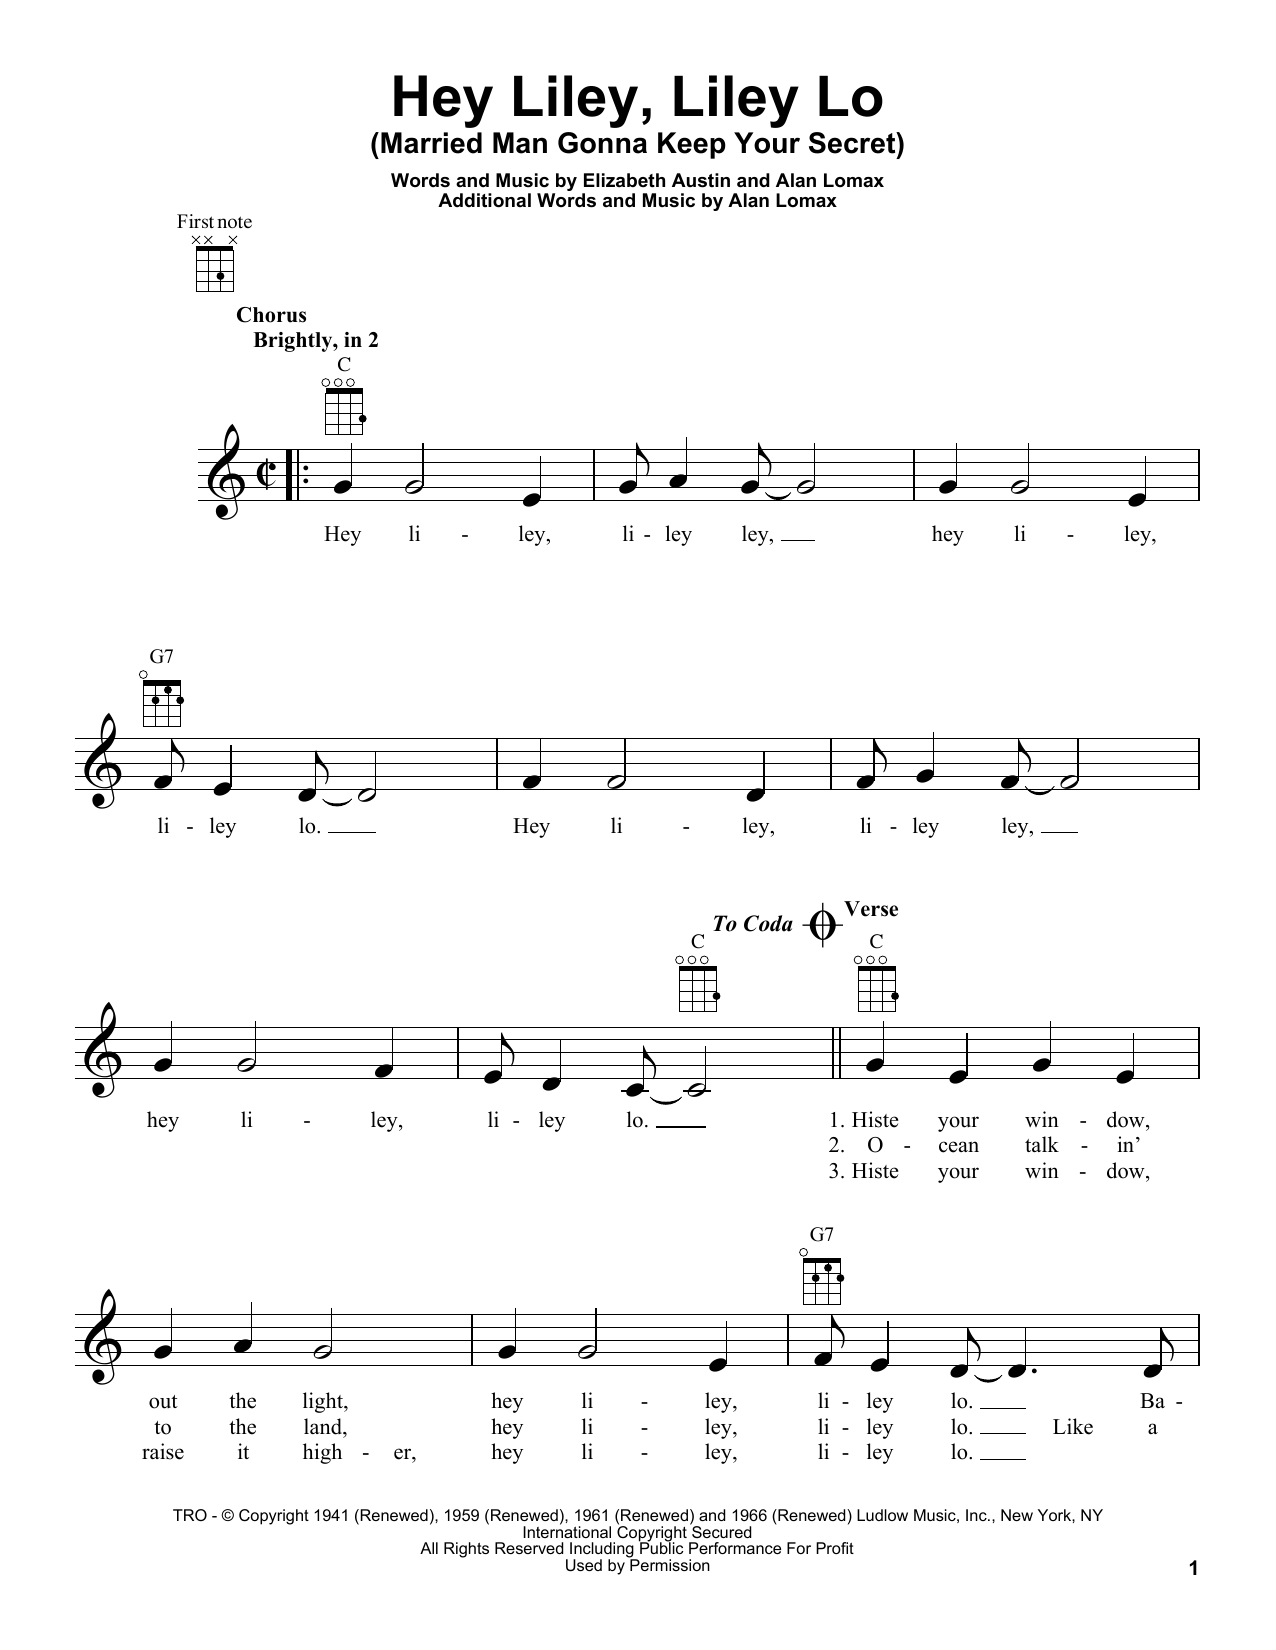 Tablature guitare Hey Liley, Liley Lo (Married Man Gonna Keep Your Secret) de Woody Guthrie - Ukulele